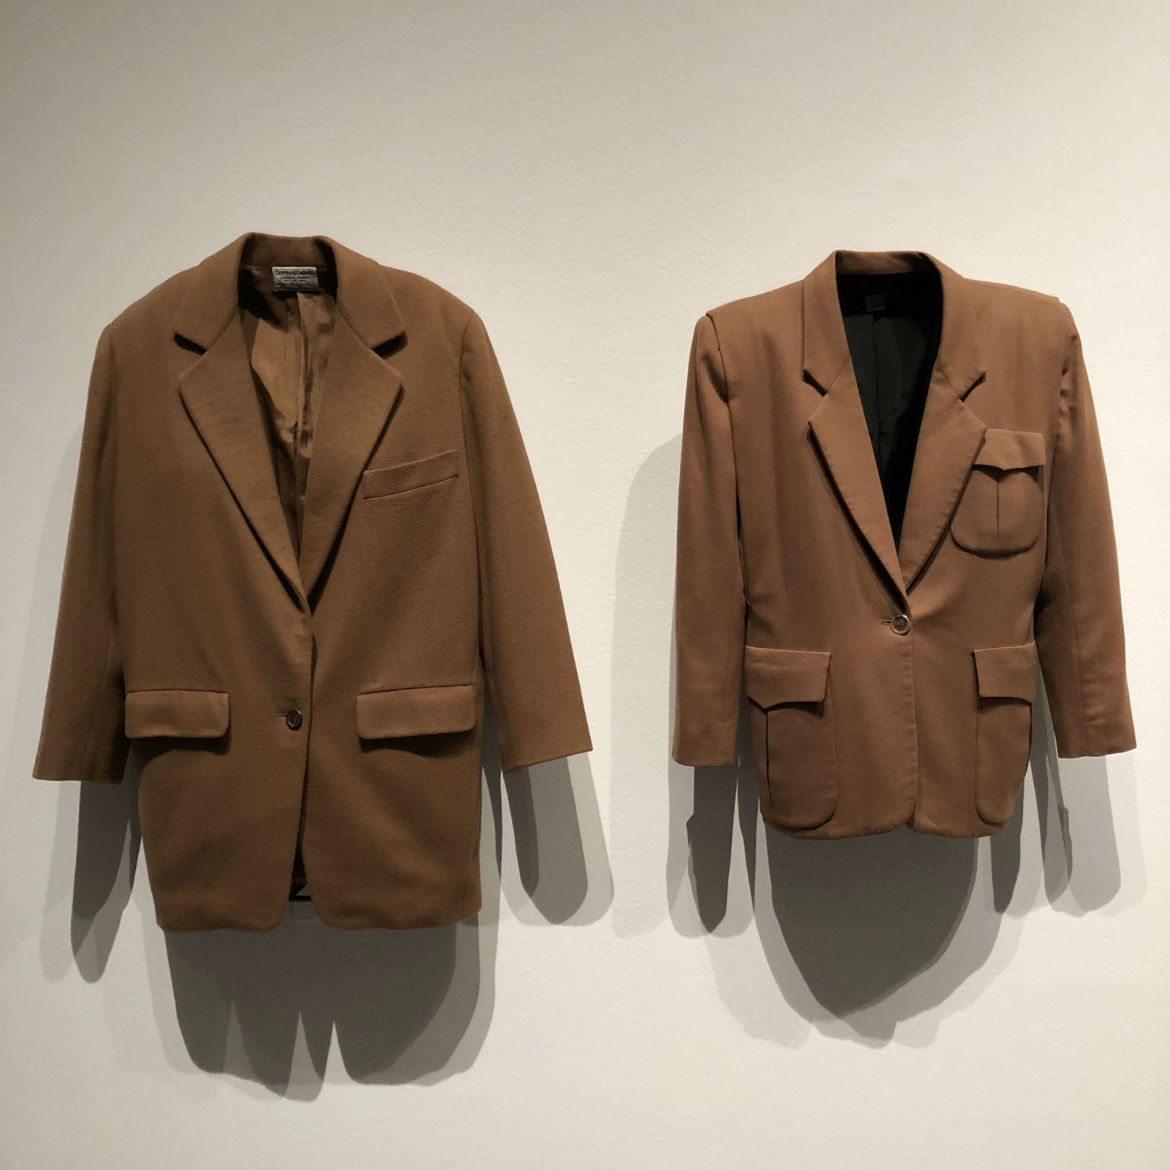 Donna Karan suiting at MoMA's Items: Is Fashion Modern?